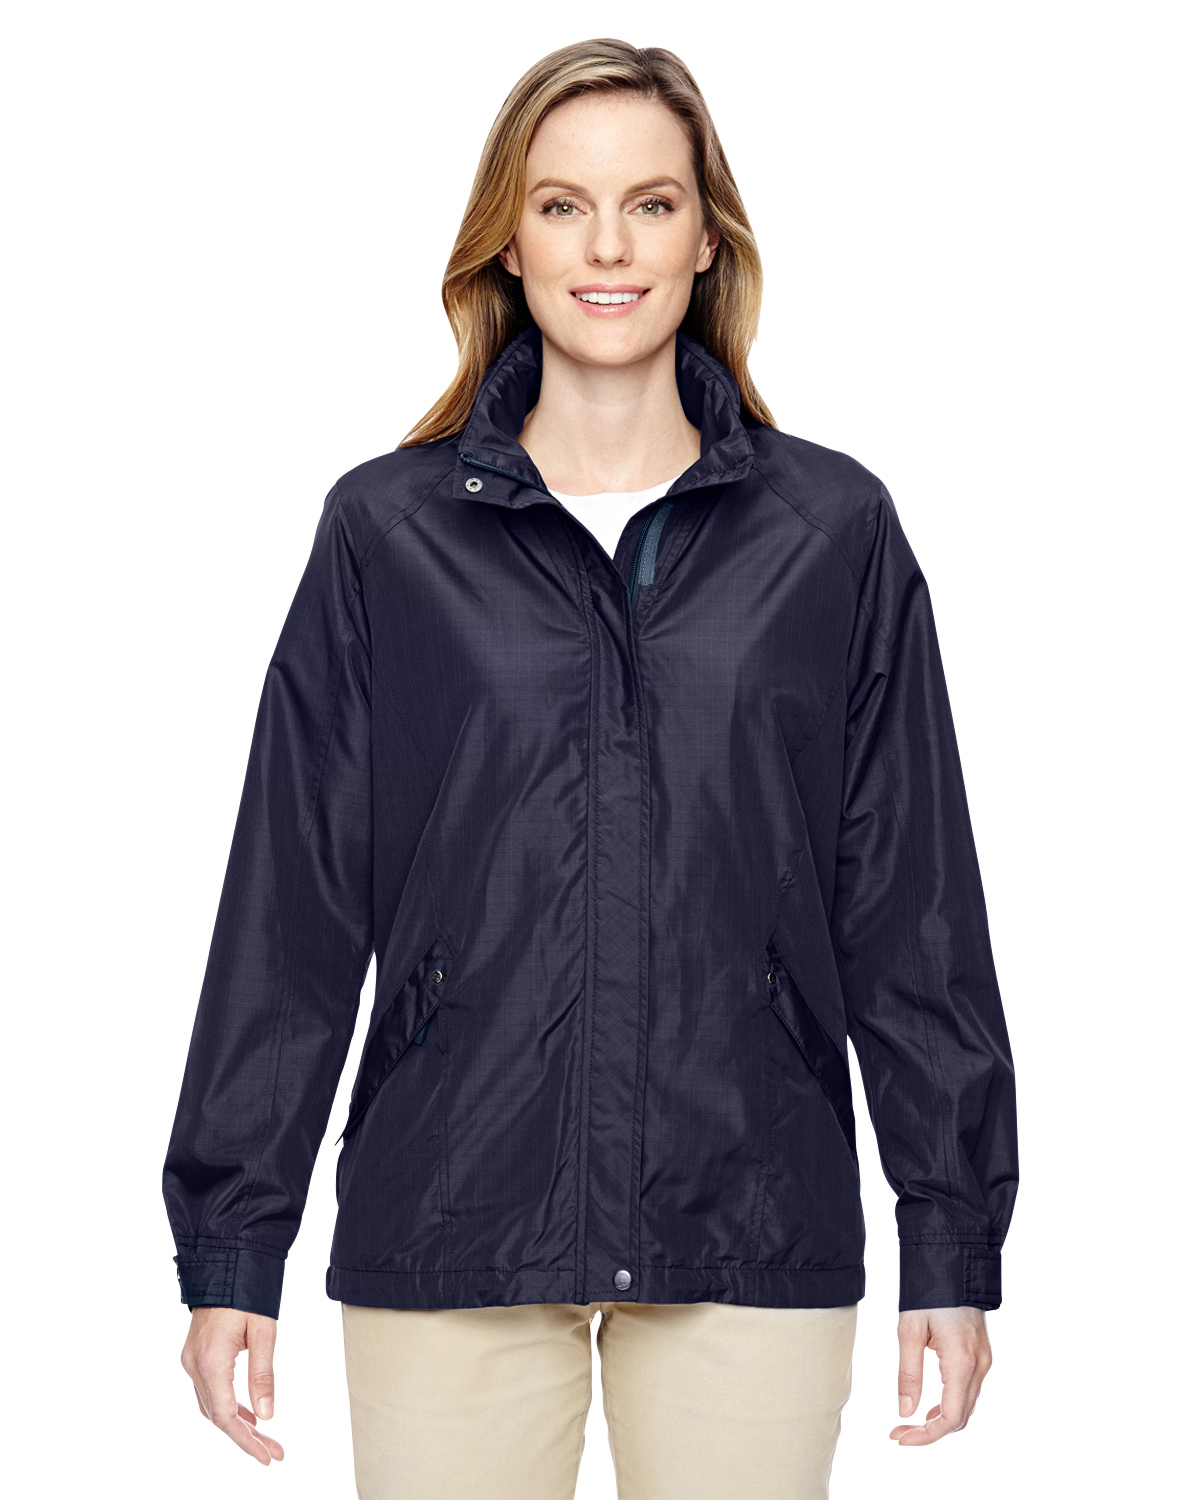 Ash City - 78216, Ladies' Excursion Transcon Lightweight Jacket with Pattern, Embroidery, Screen Printing - Logo Masters International